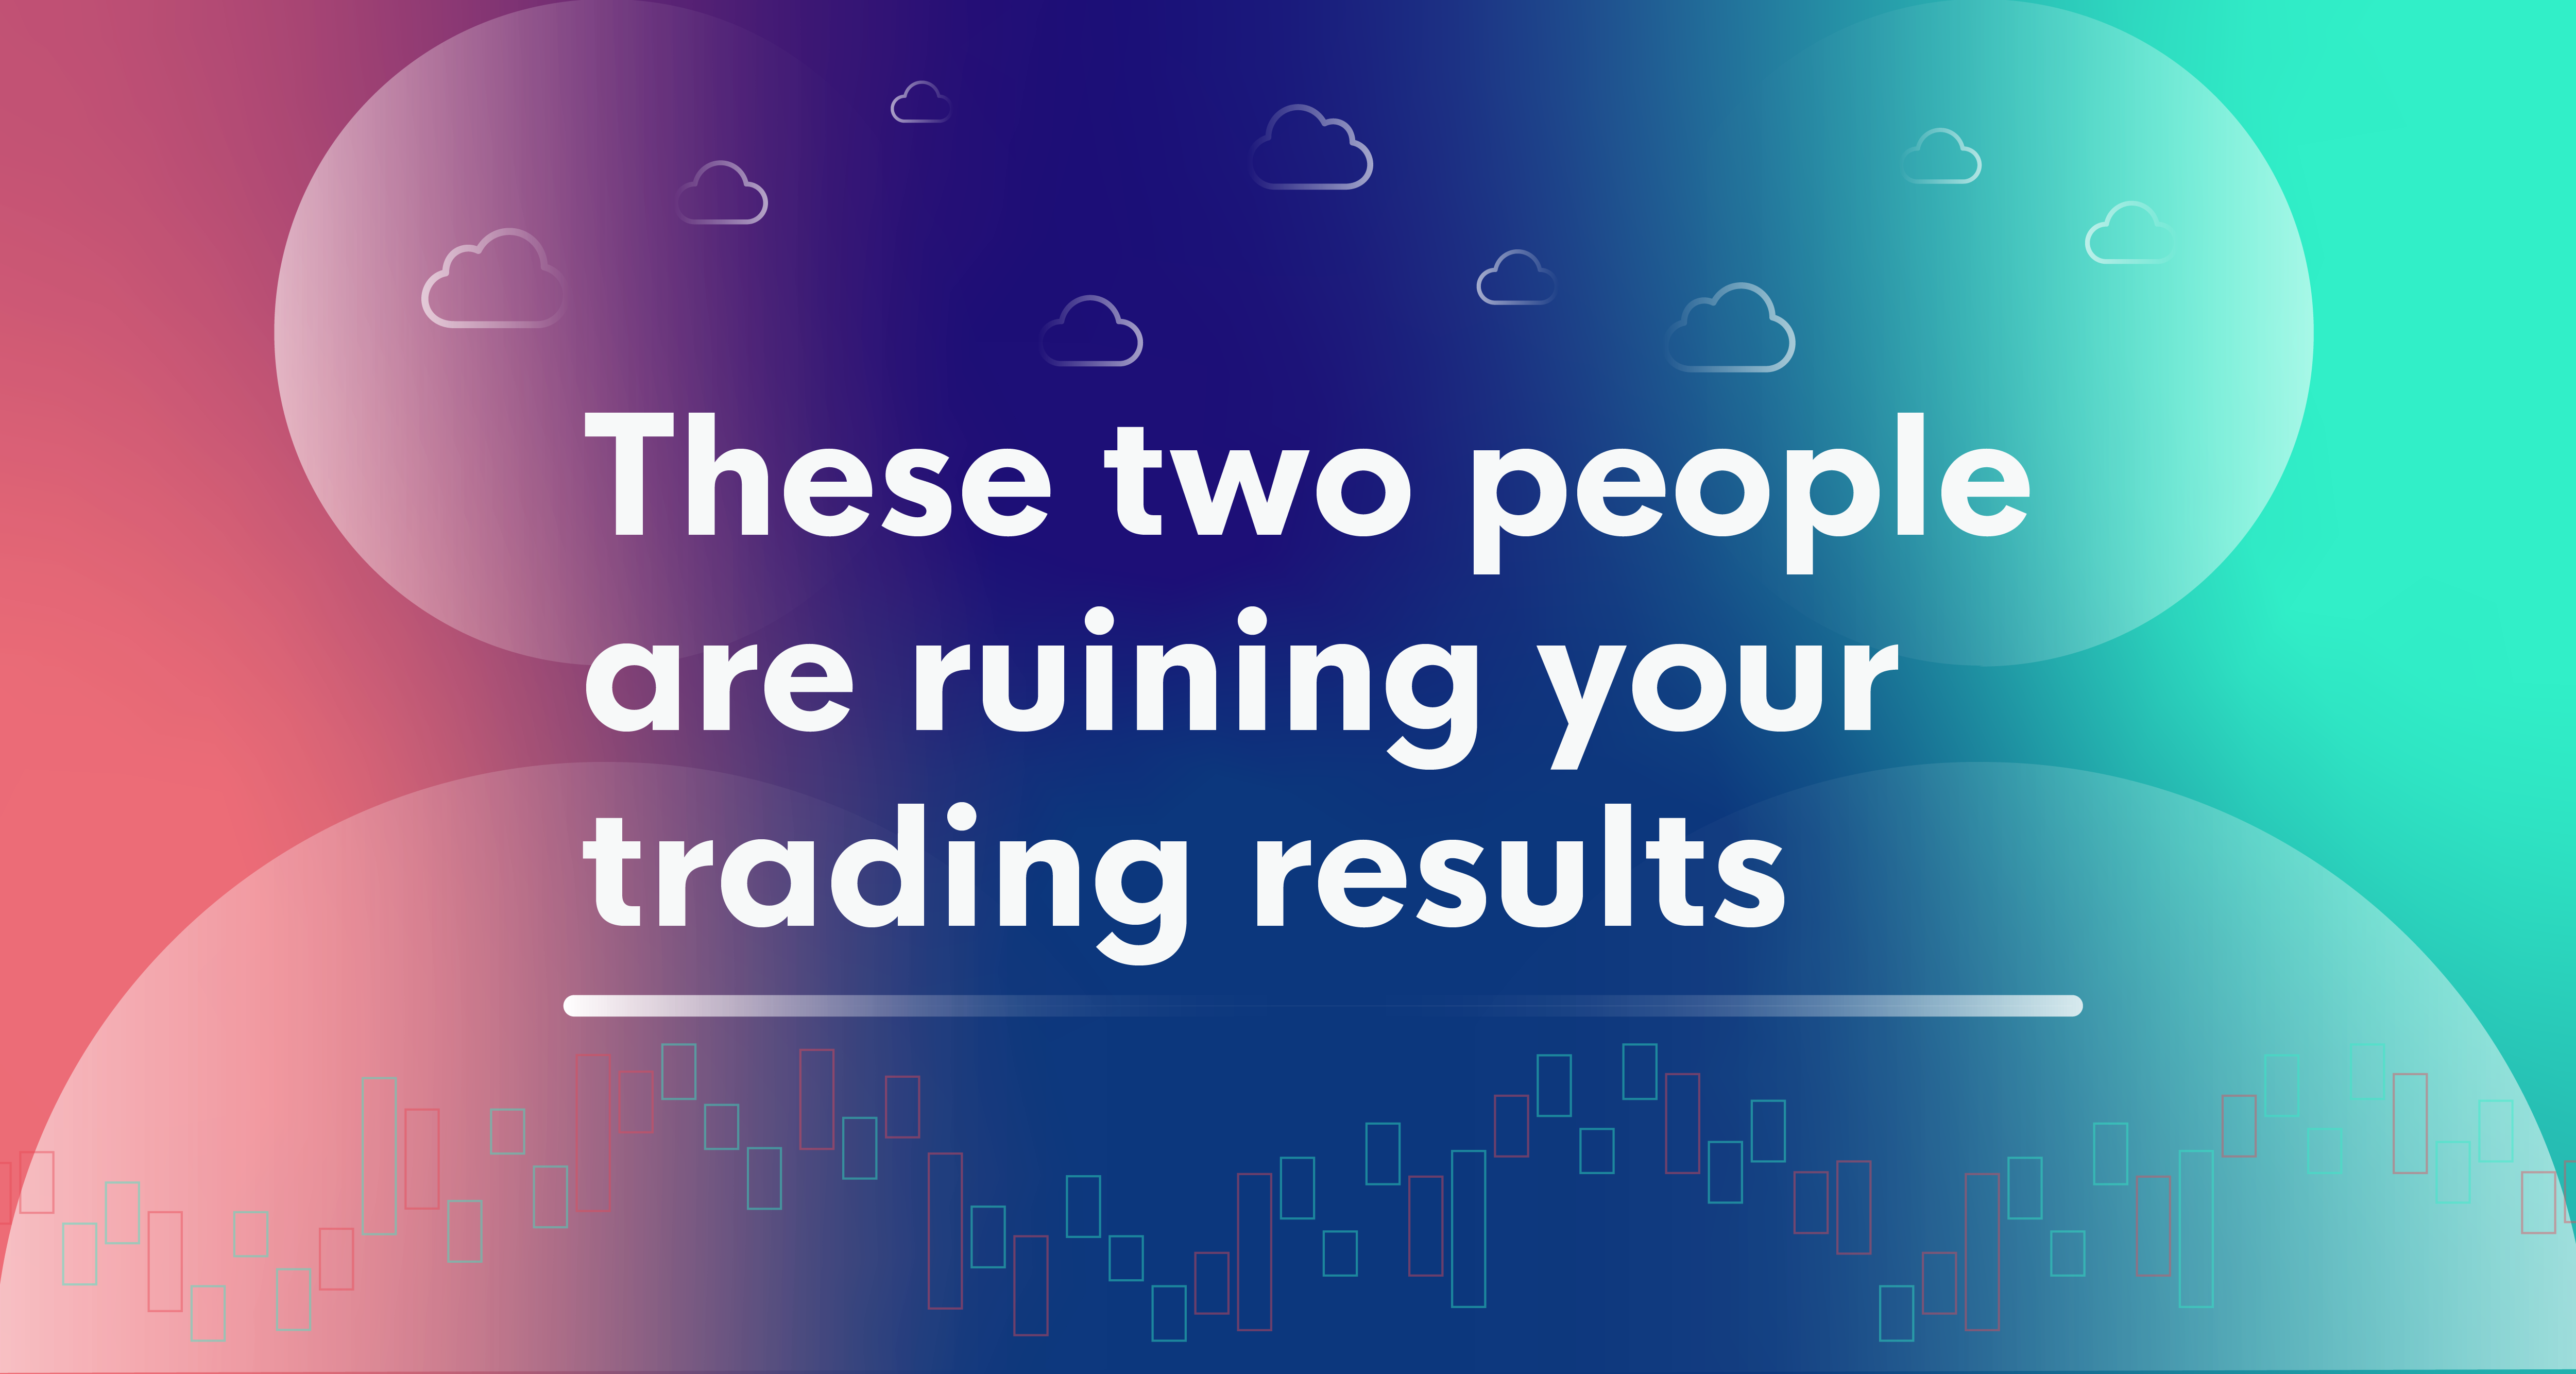 People ruining your trading results